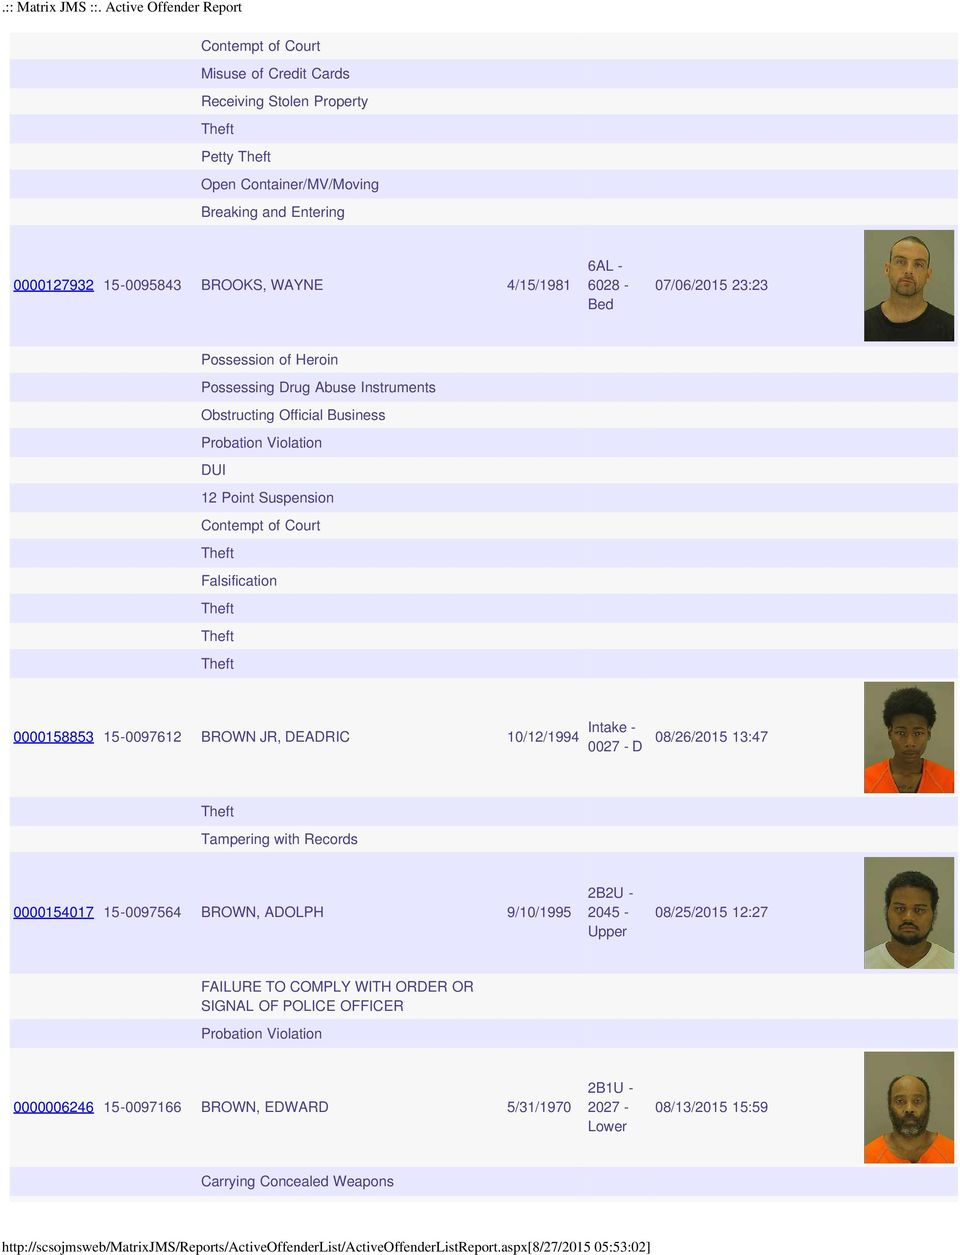 15-0097612 BROWN JR, DEADRIC 10/12/1994 Intake - 0027 - D 08/26/2015 13:47 Tampering with Records 0000154017 15-0097564 BROWN, ADOLPH 9/10/1995 2B2U -